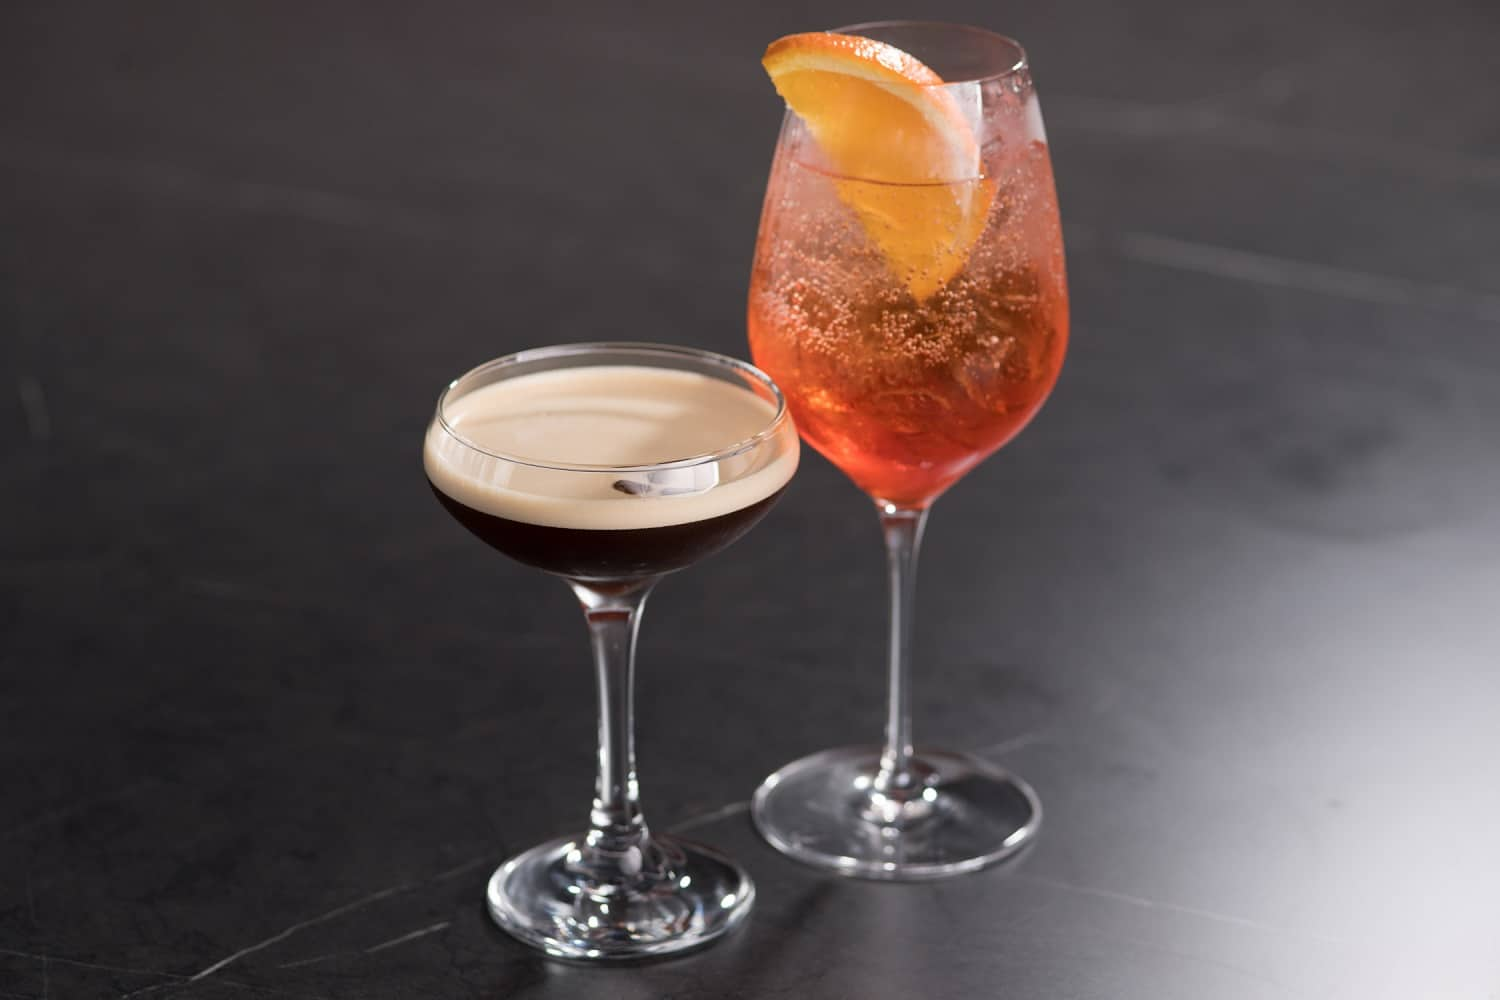 Espresso Martini and Aperol cocktails at Saros Bar in Moonee Ponds